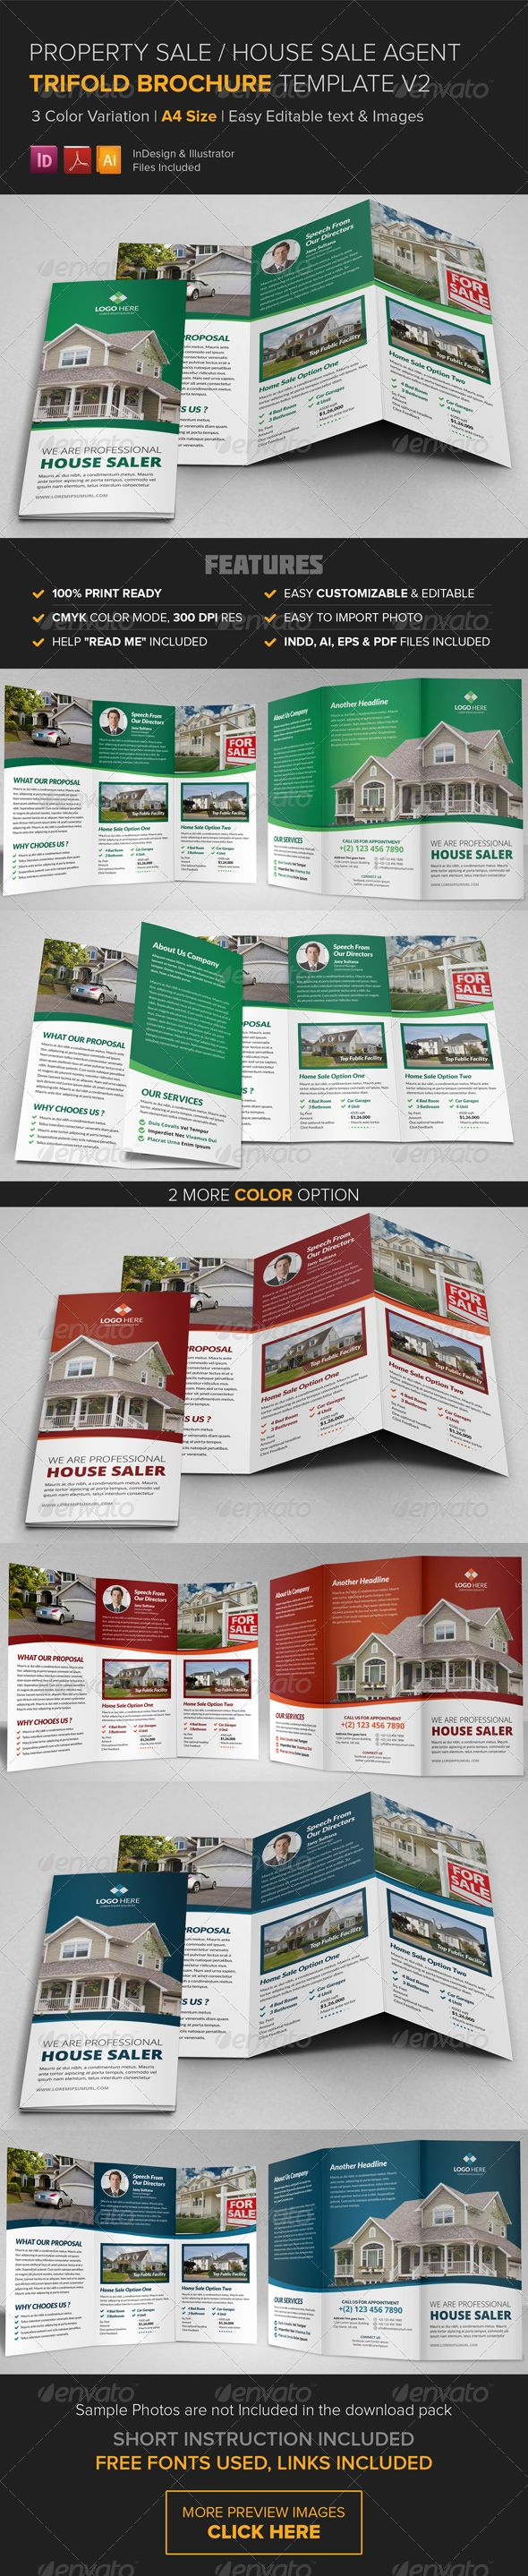 Property Sale Trifold Brochure Template v2 — Vector EPS #design brochure #small business • Available here → https://graphicriver.net/item/property-sale-trifold-brochure-template-v2/8545969?ref=pxcr